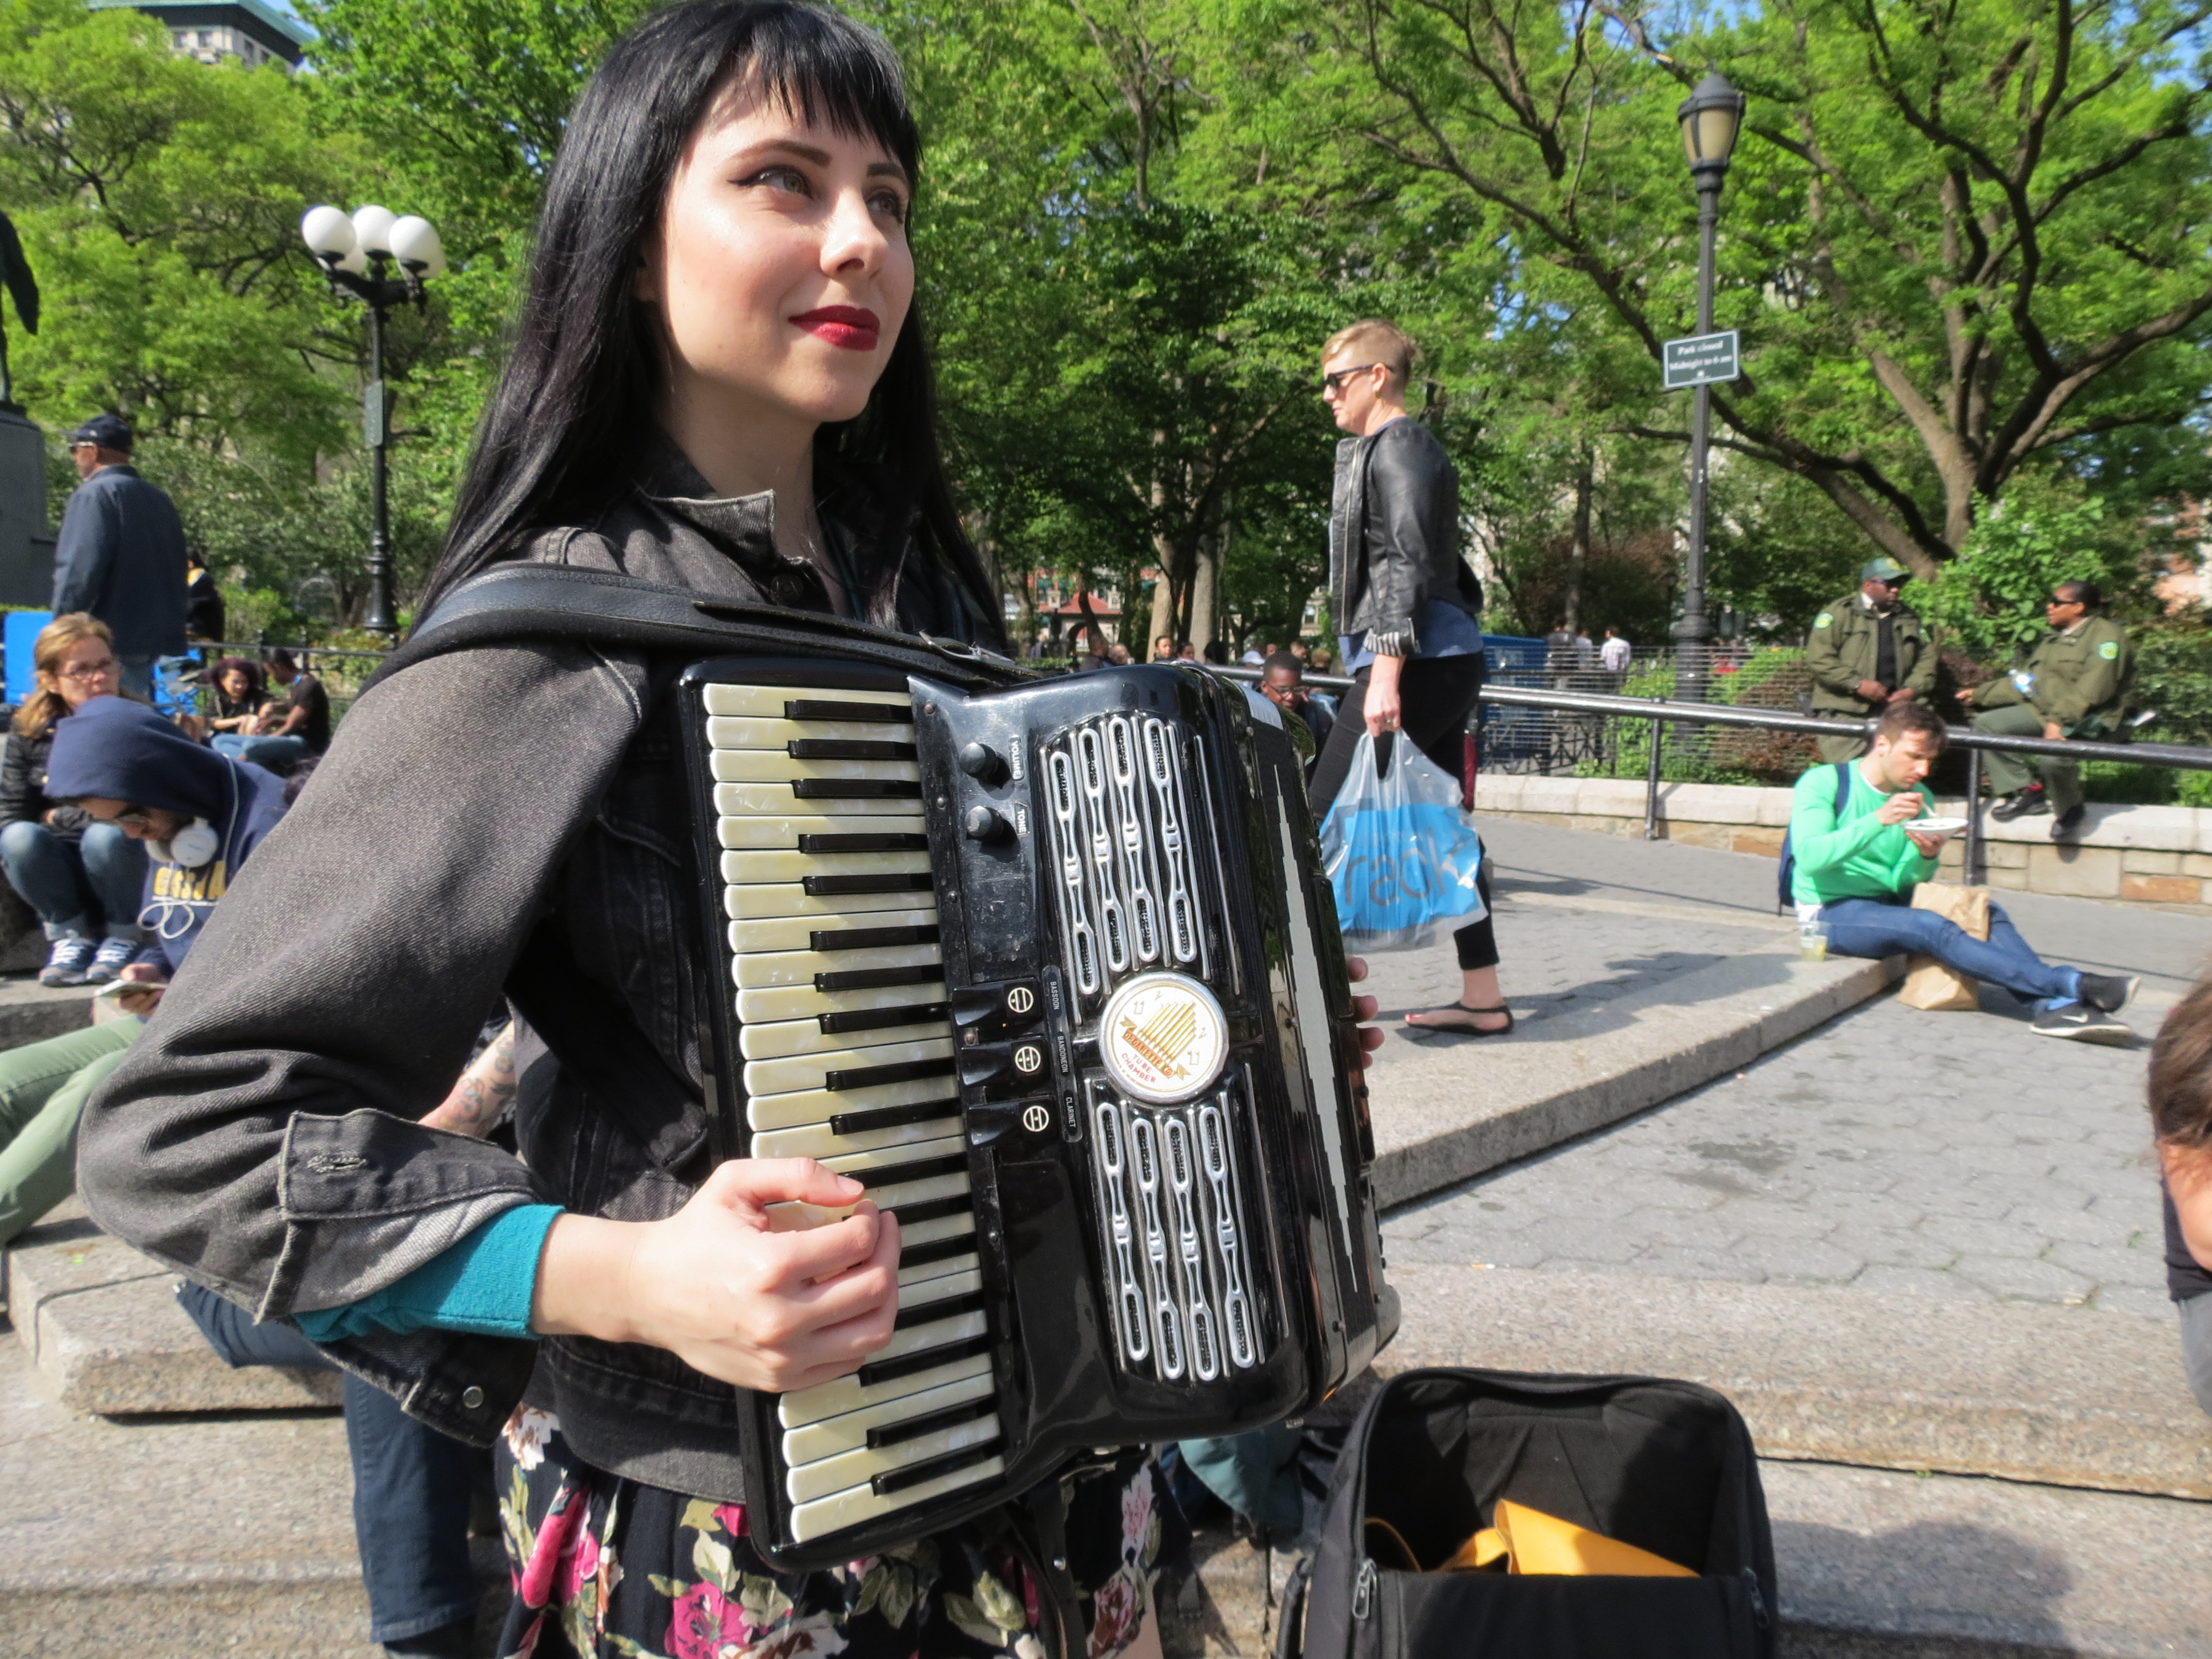 Erica Mancini w/accordion